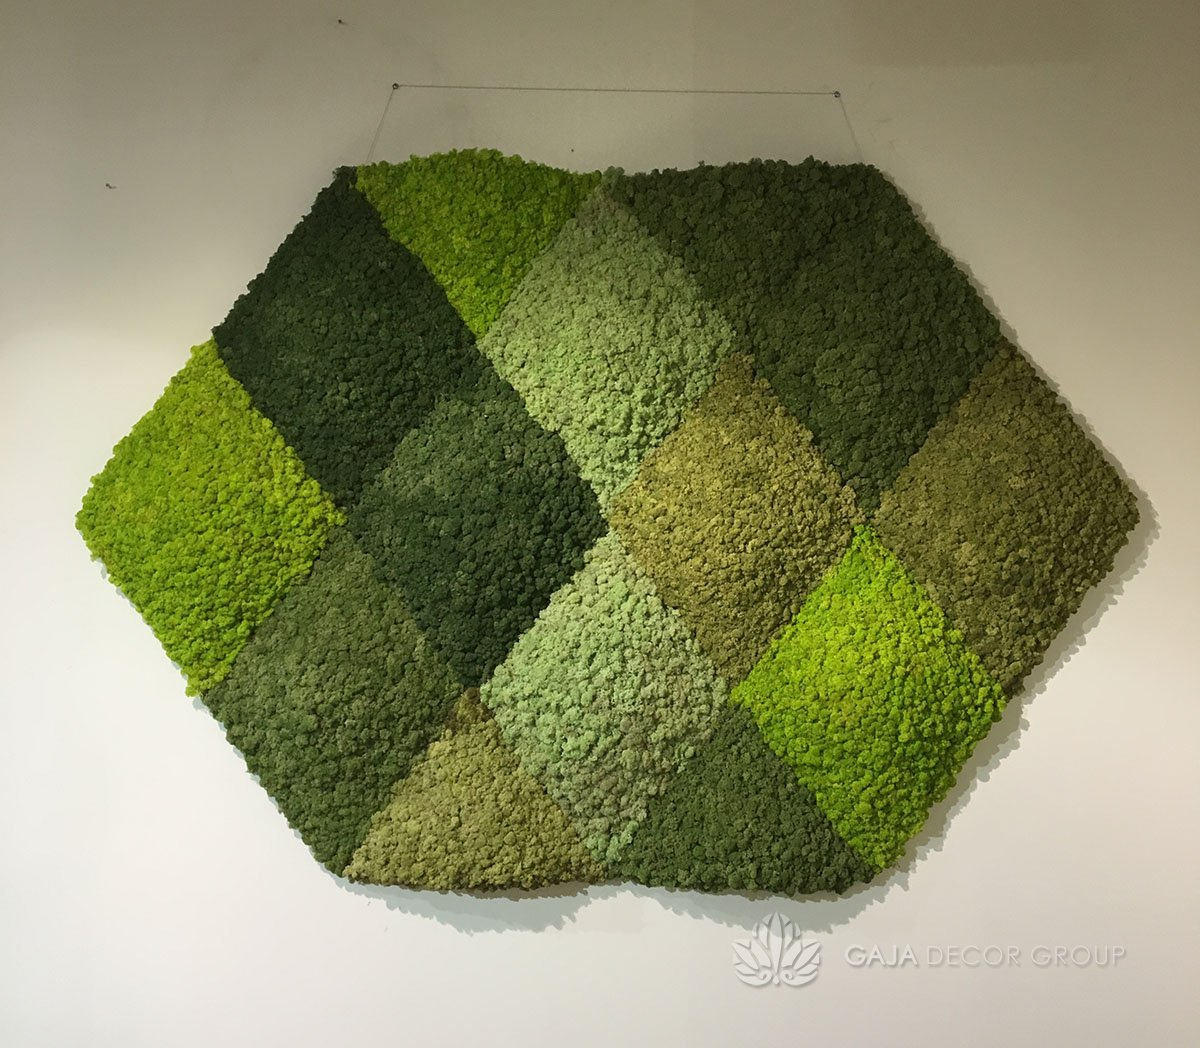 Diamond shape Scandinavian moss picture